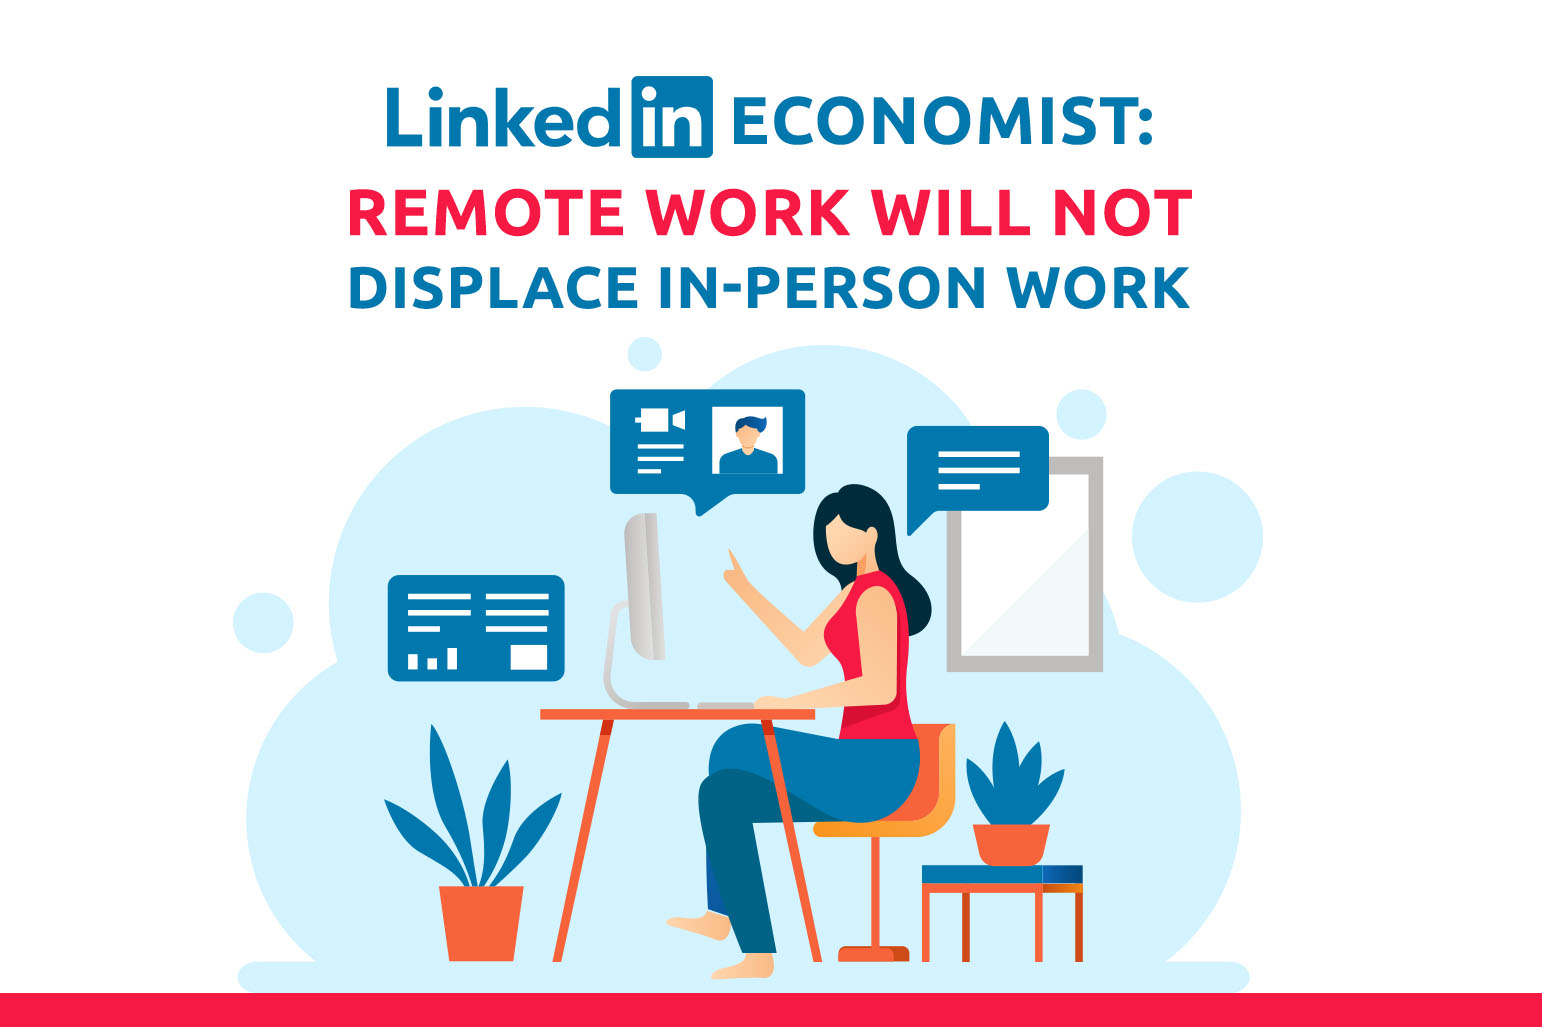 LinkedIn Economist: Remote Work Will Not Displace In-Person Work